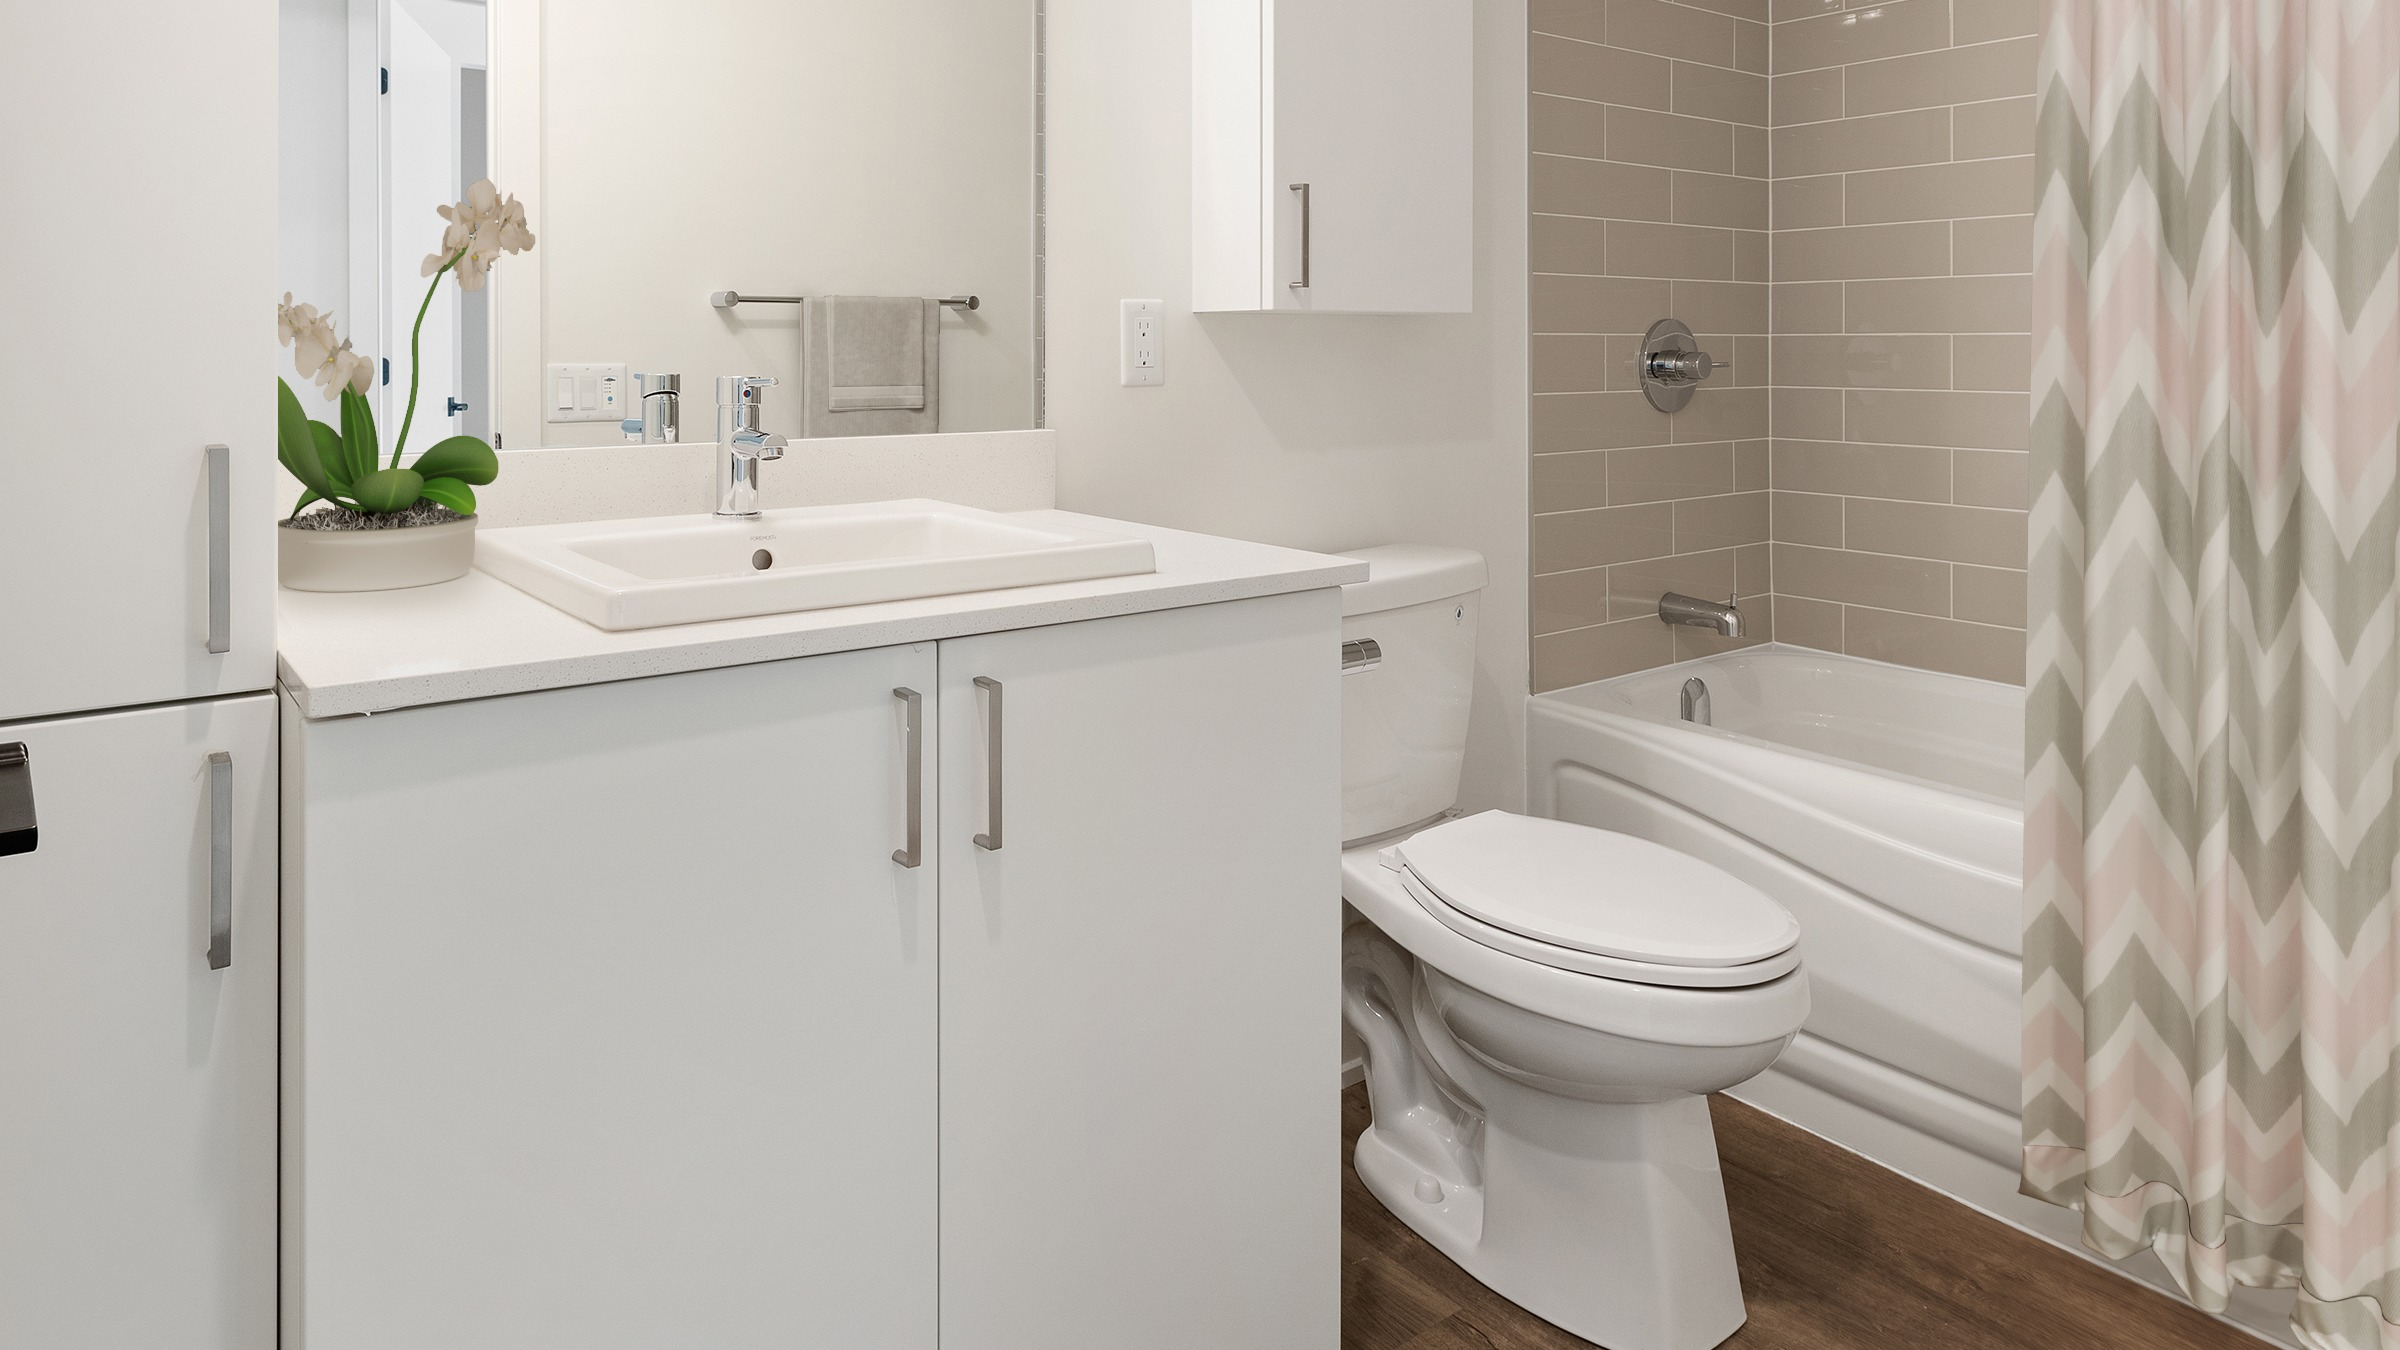 Full bathroom with sink, toilet and shower with a bath tub